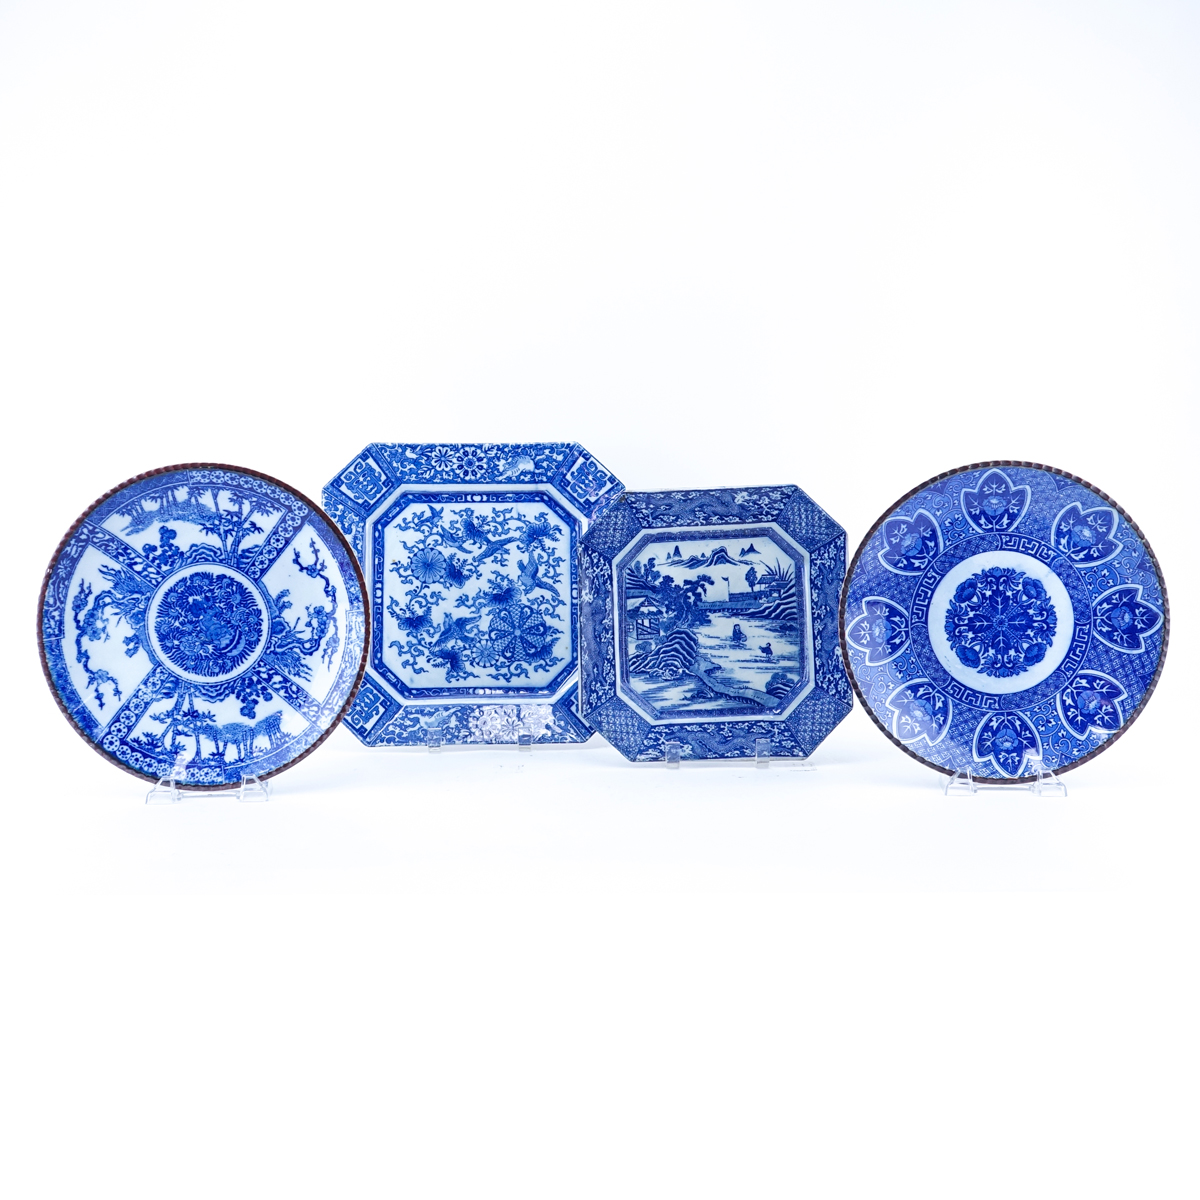 Four (4) Chinese Blue & White Pottery Chargers. Unsigned.